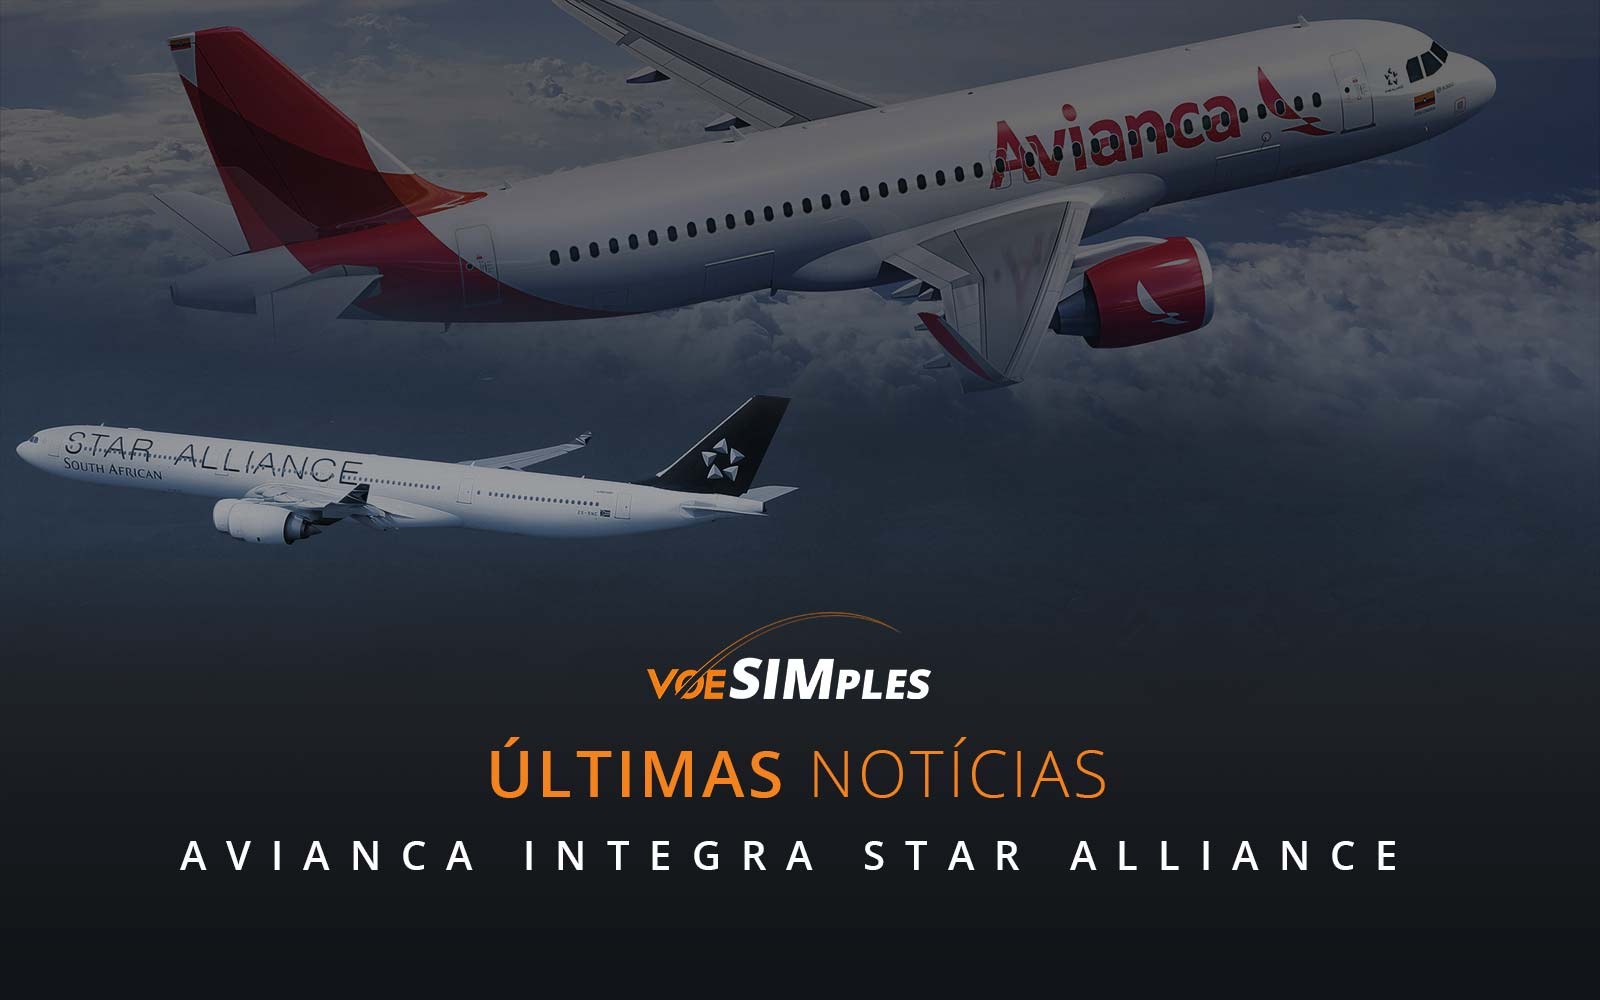 Avianca Brasil se une à Star Alliance